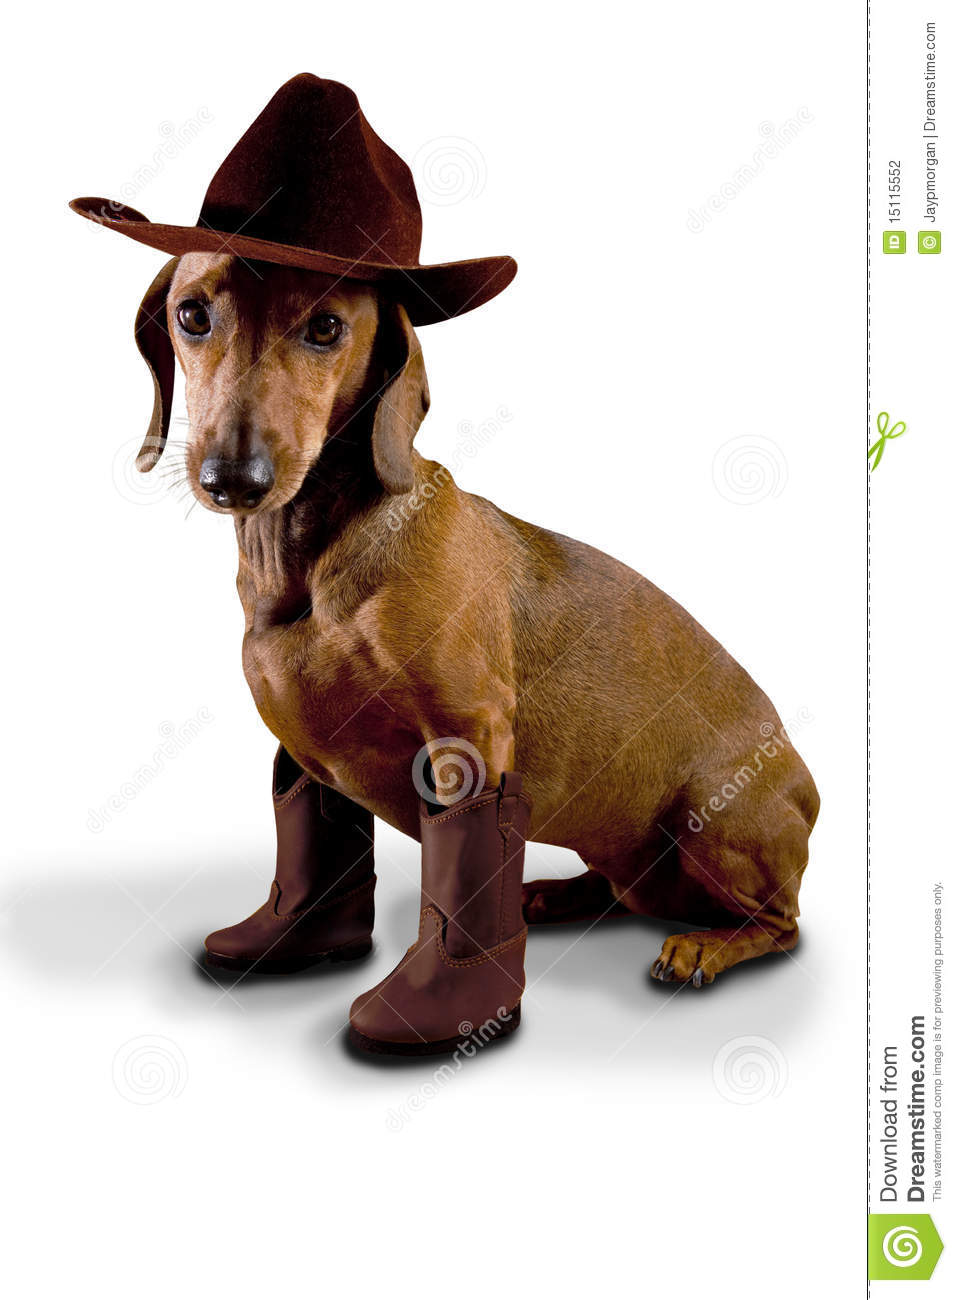 Cowboy Boots For Dogs photo - 1